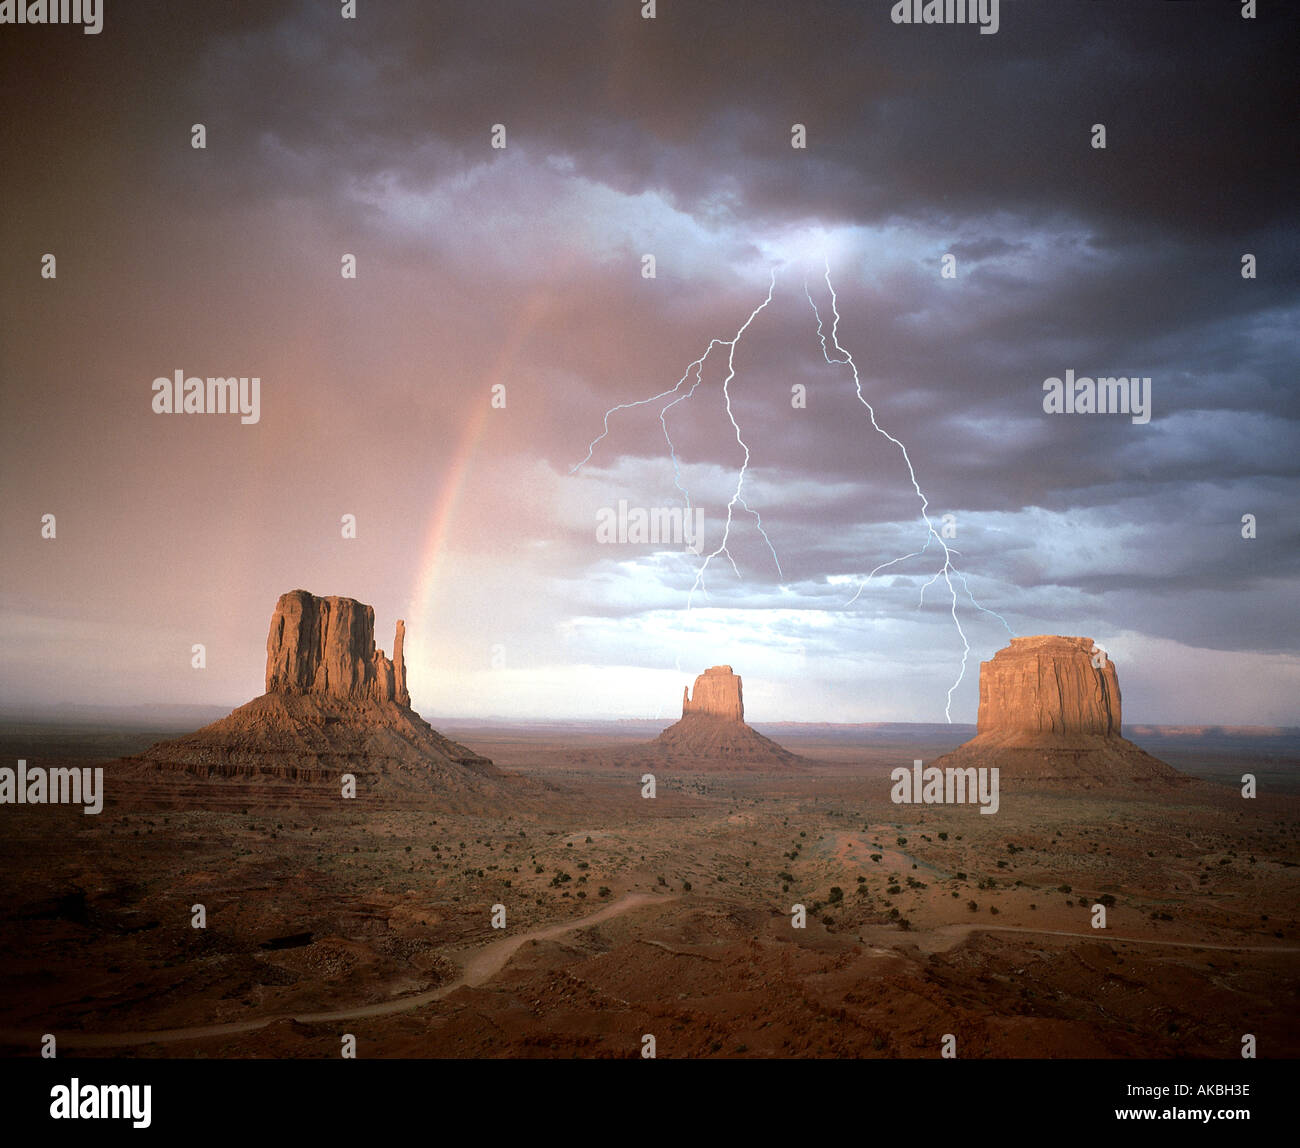 Estados Unidos - Arizona: Monument Valley Navajo Tribal Park Imagen De Stock